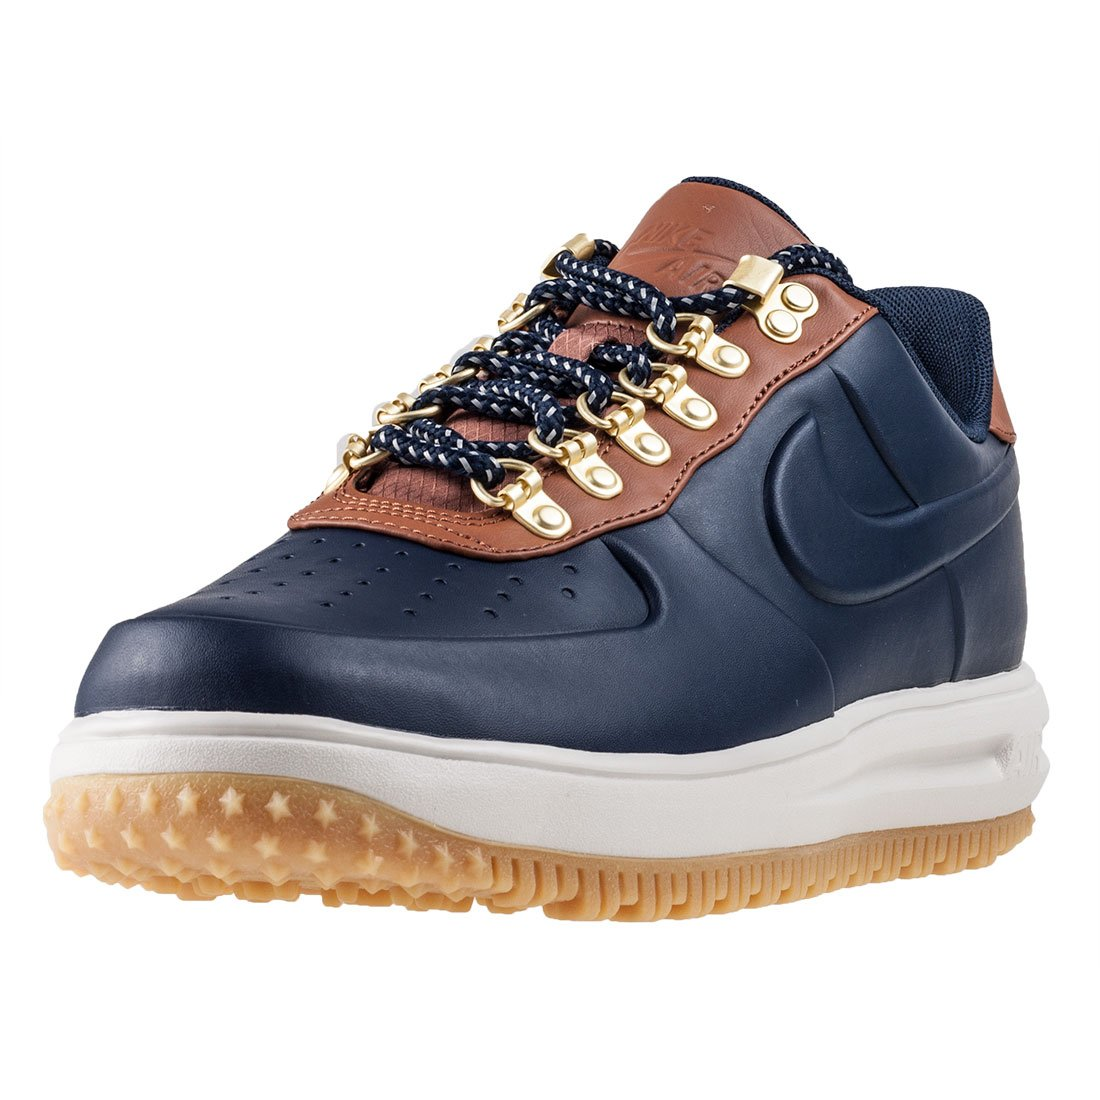 238abe5cdd2a Nike Men S Lunar Force 1 Duckboot Low Obsidian Brown  Buy Online at Low  Prices in India - Amazon.in